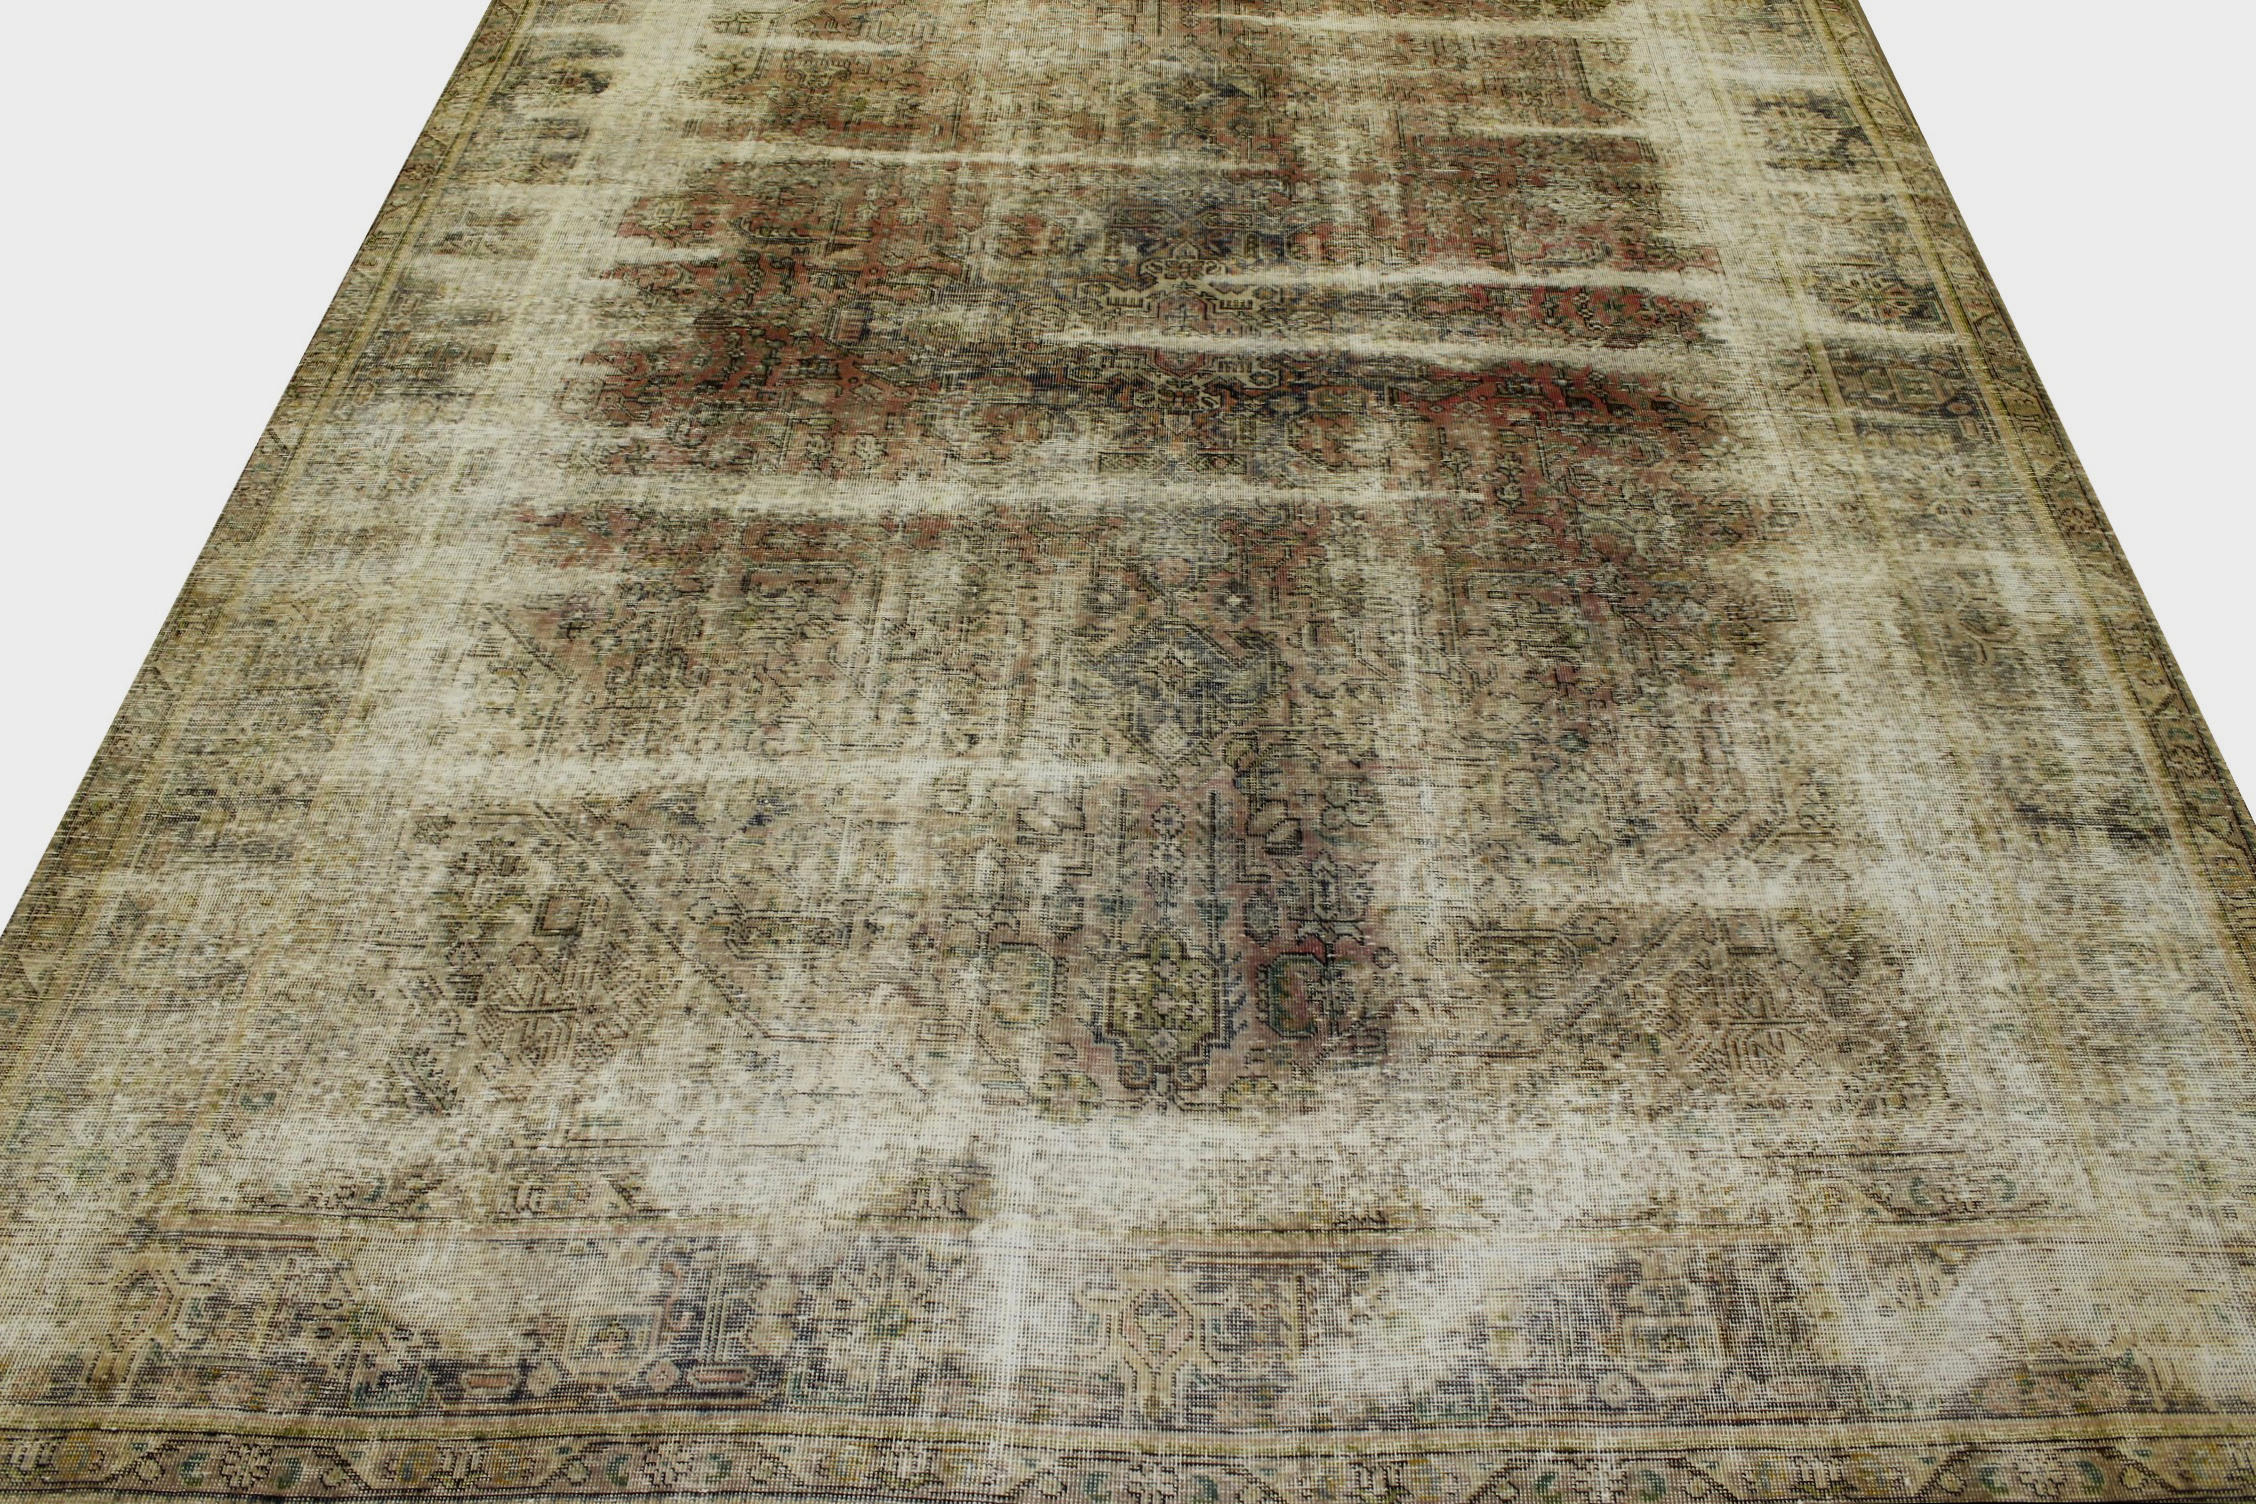 9x12 Vintage Hand Knotted Wool Area Rug - MR20865